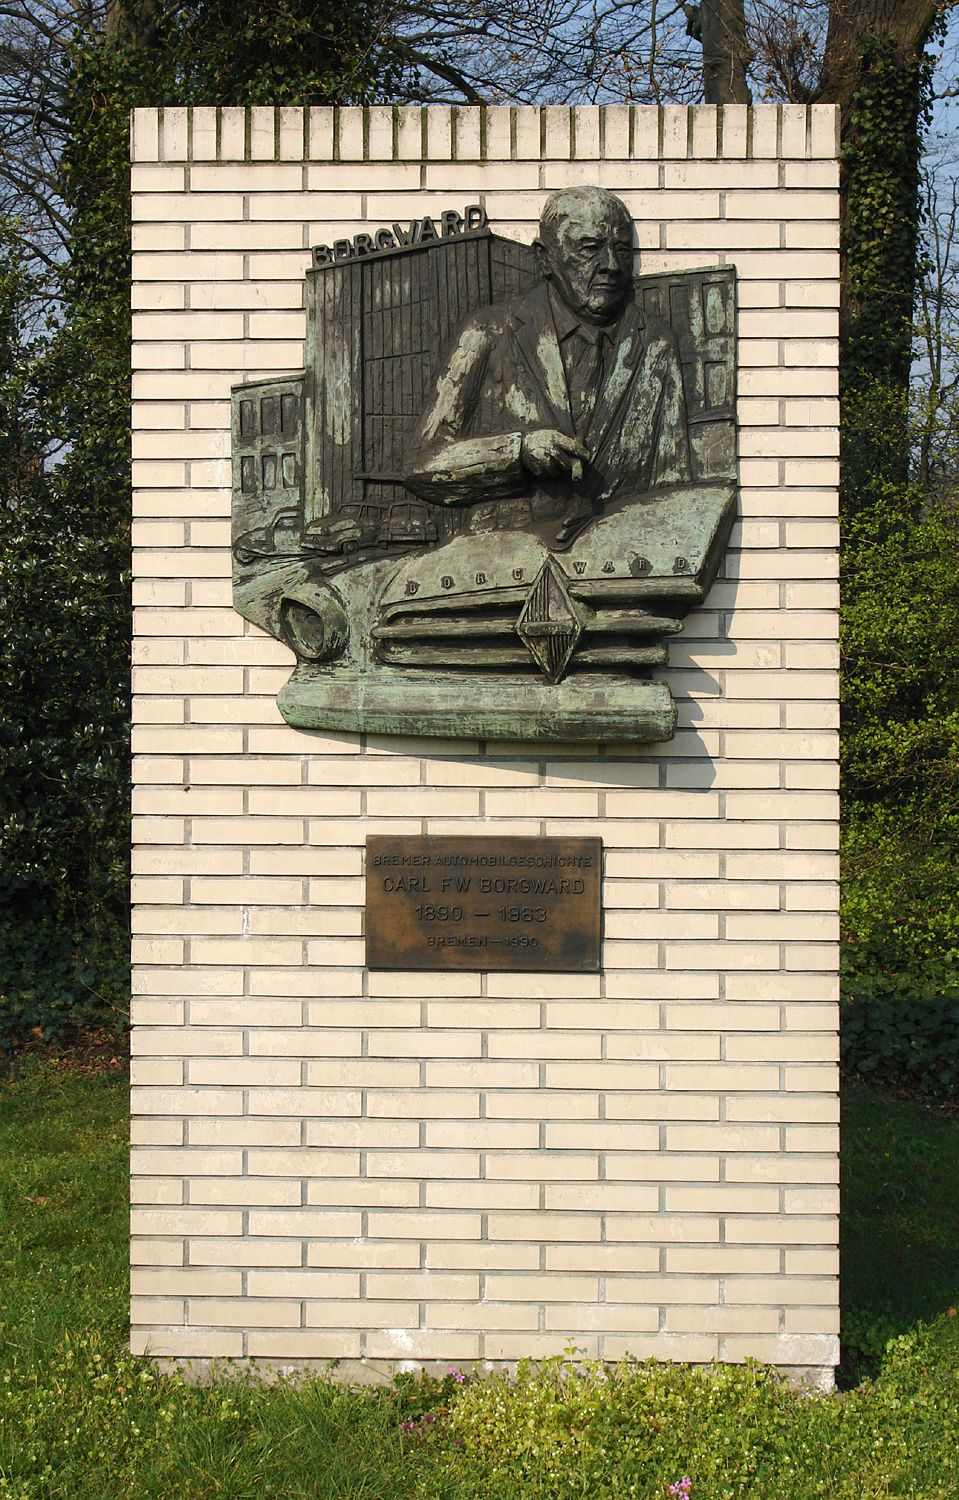 Ikone des Scheiterns: Denkmal für den Automobilunternehmer Carl F. W. Borgward in Bremen-Sebaldsbrück, 2. April 2007. Foto: Jürgen Howaldt, Quelle: [https://commons.wikimedia.org/wiki/File:BorgwardDenkmal.jpg Wikimedia Commons], Lizenz: [https://creativecommons.org/licenses/by-sa/2.0/de/deed.en CC BY-SA 2.0]